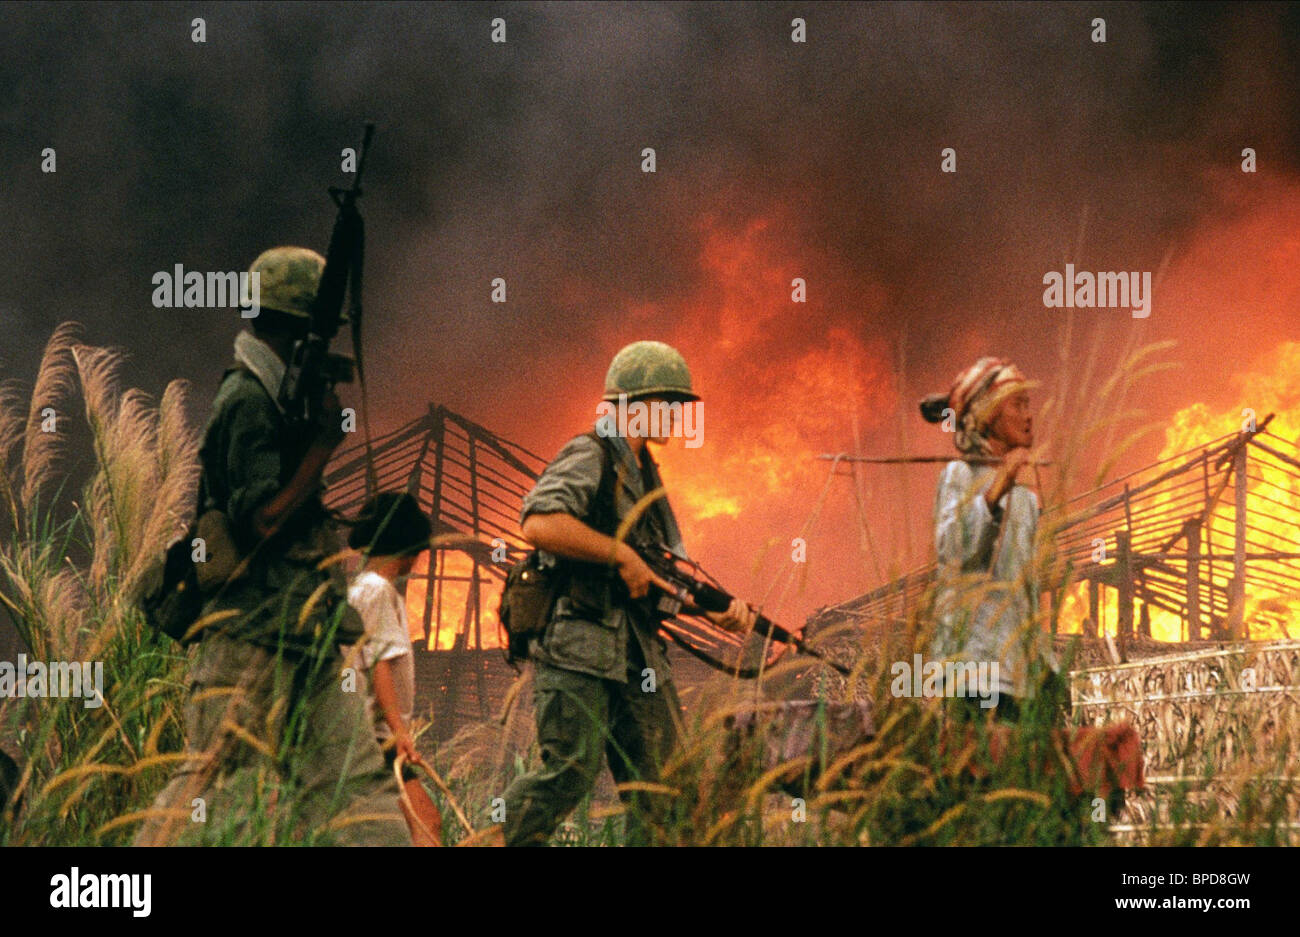 US SOLDIERS PASS BURNING HUTS CASUALTIES OF WAR (1989) - Stock Image